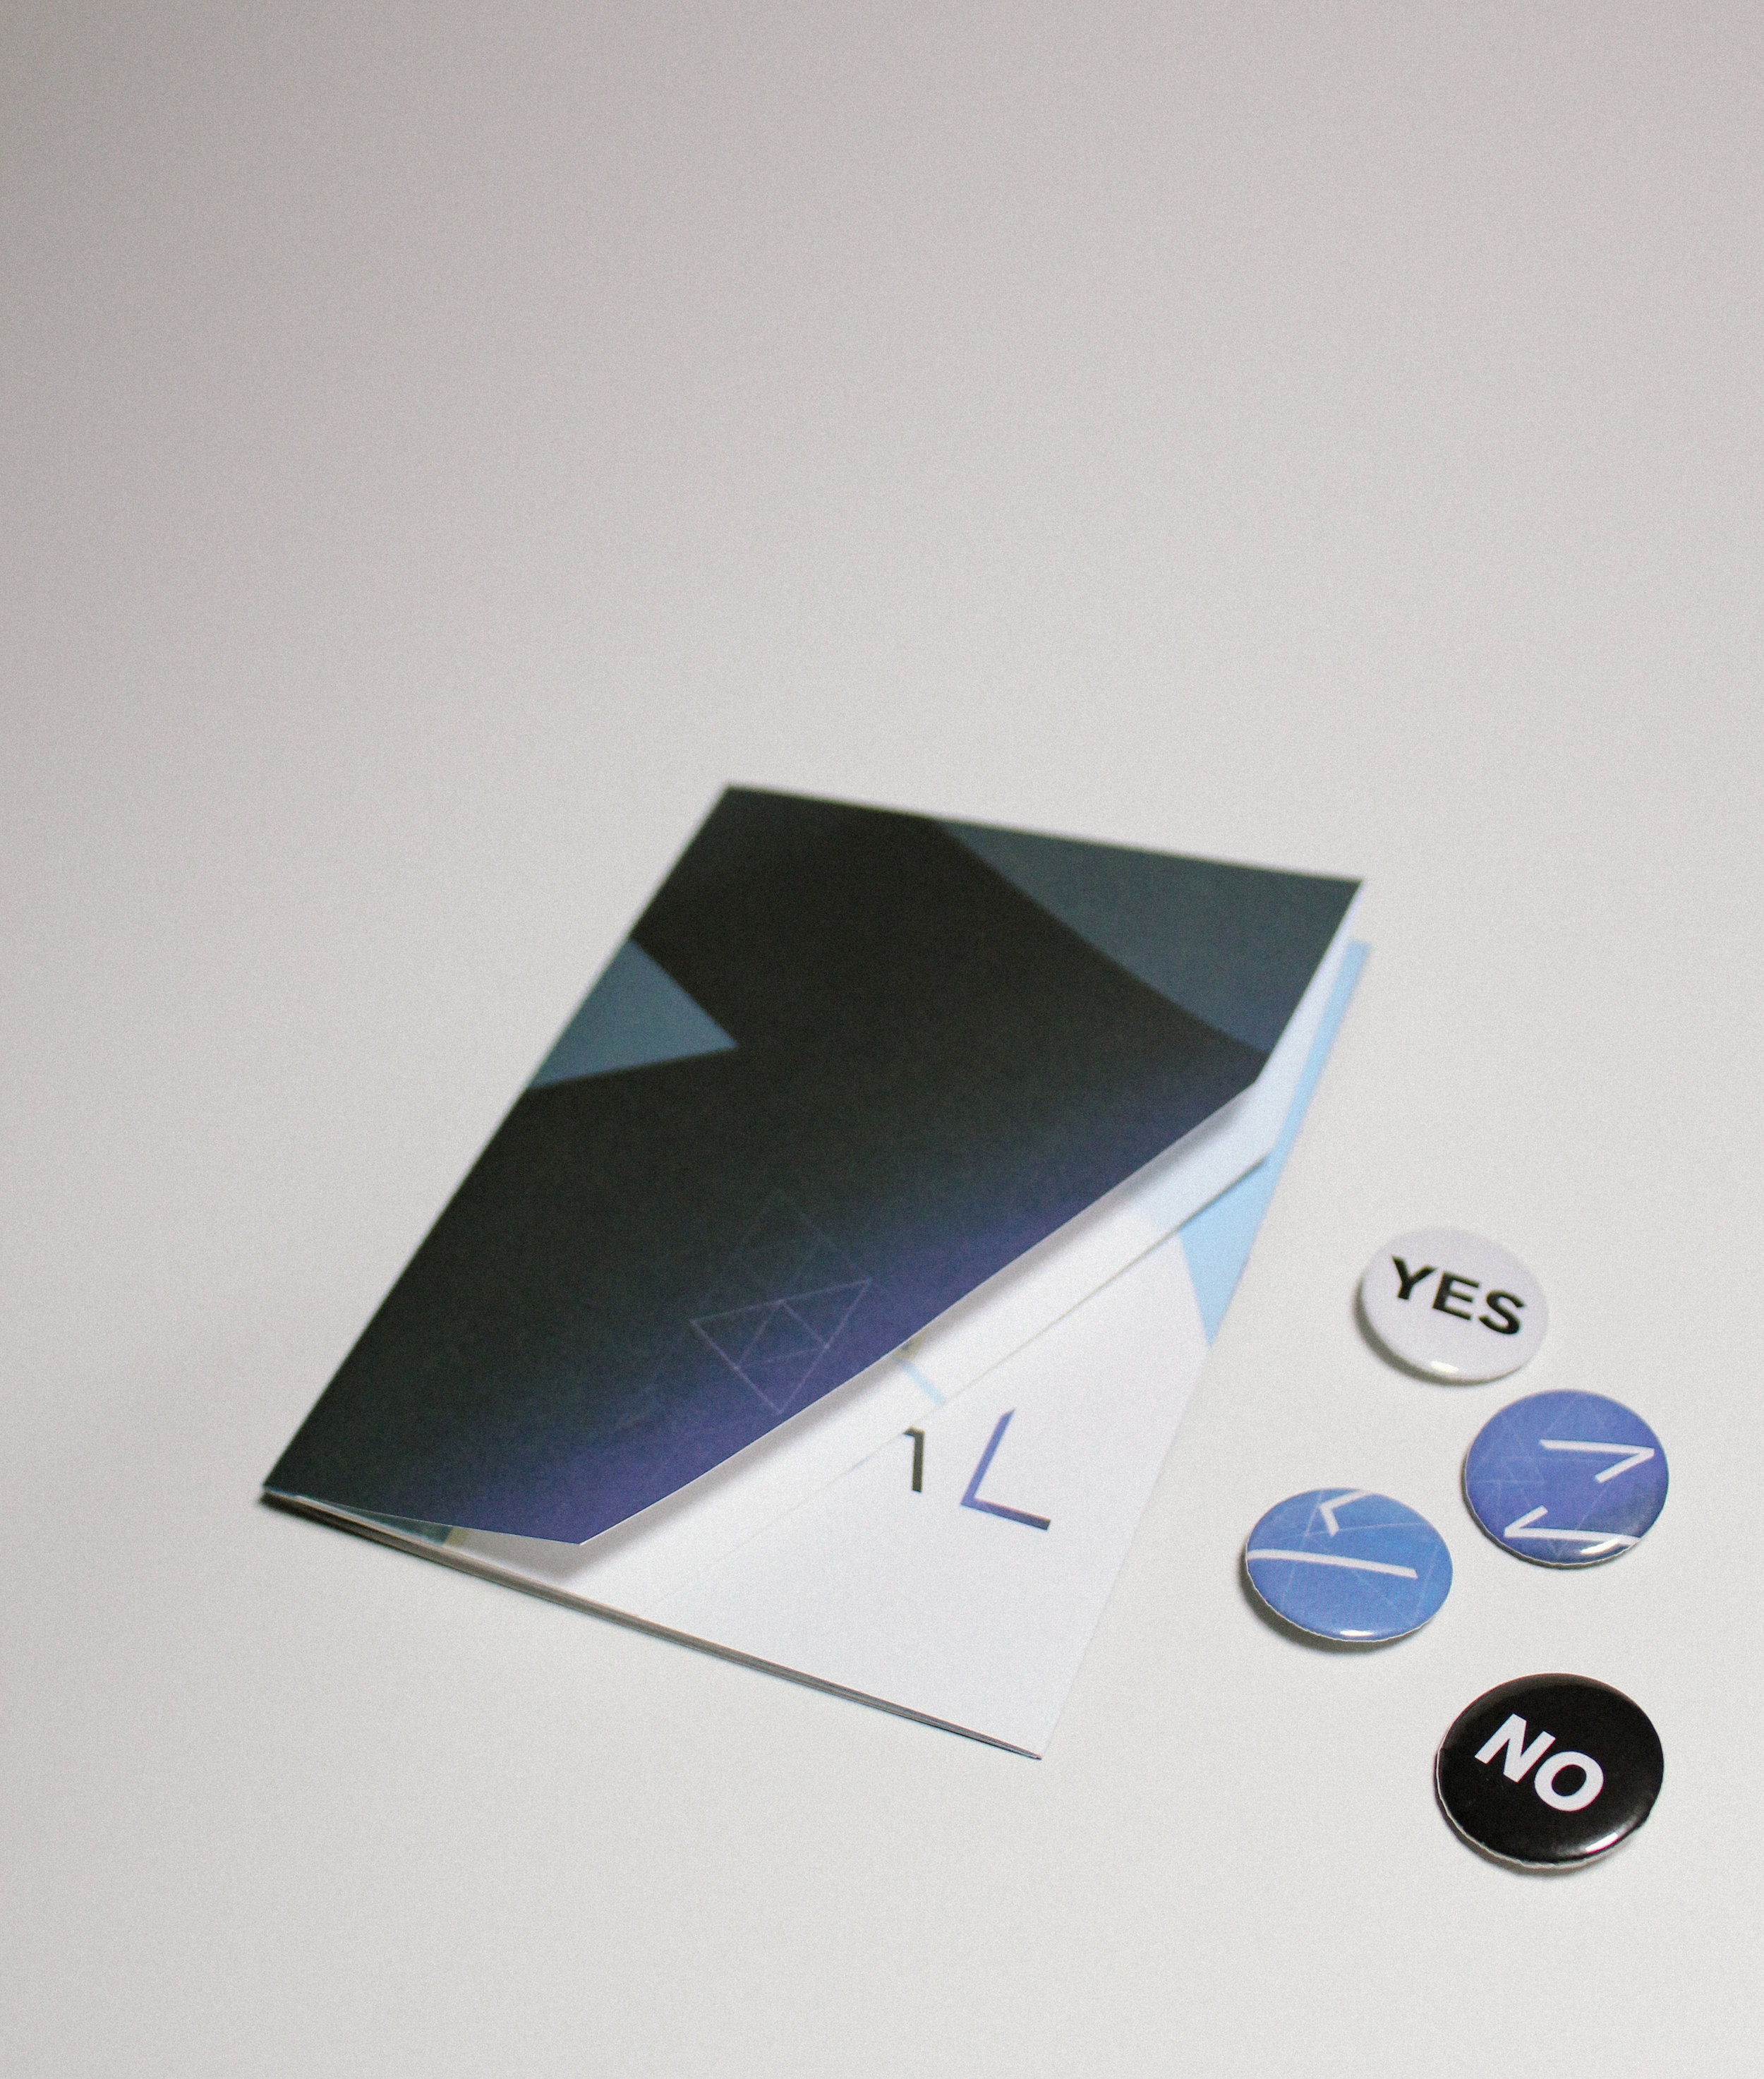 promo brochure and pins.jpg